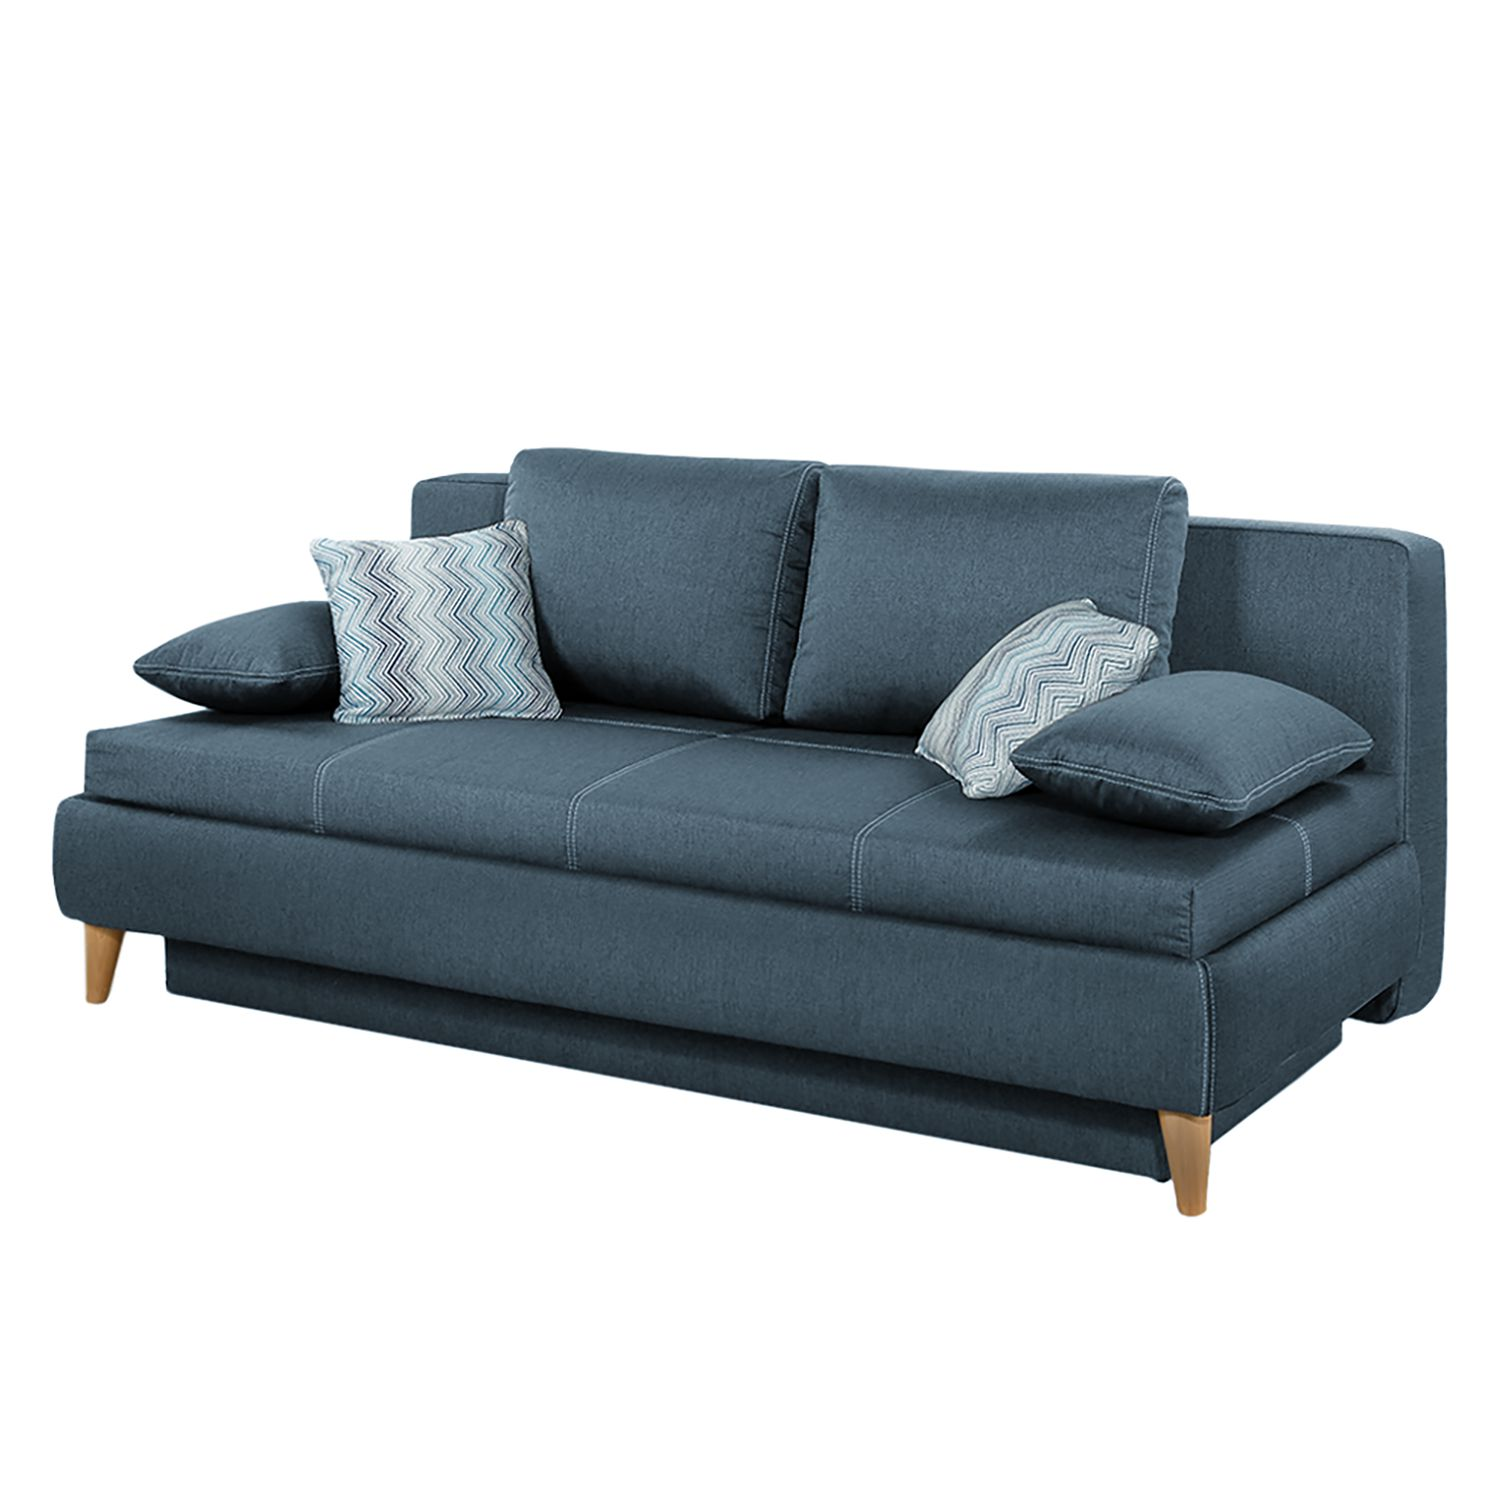 Design Schlafsofas Design Schlafsofas. Design Schlafsofas With Design